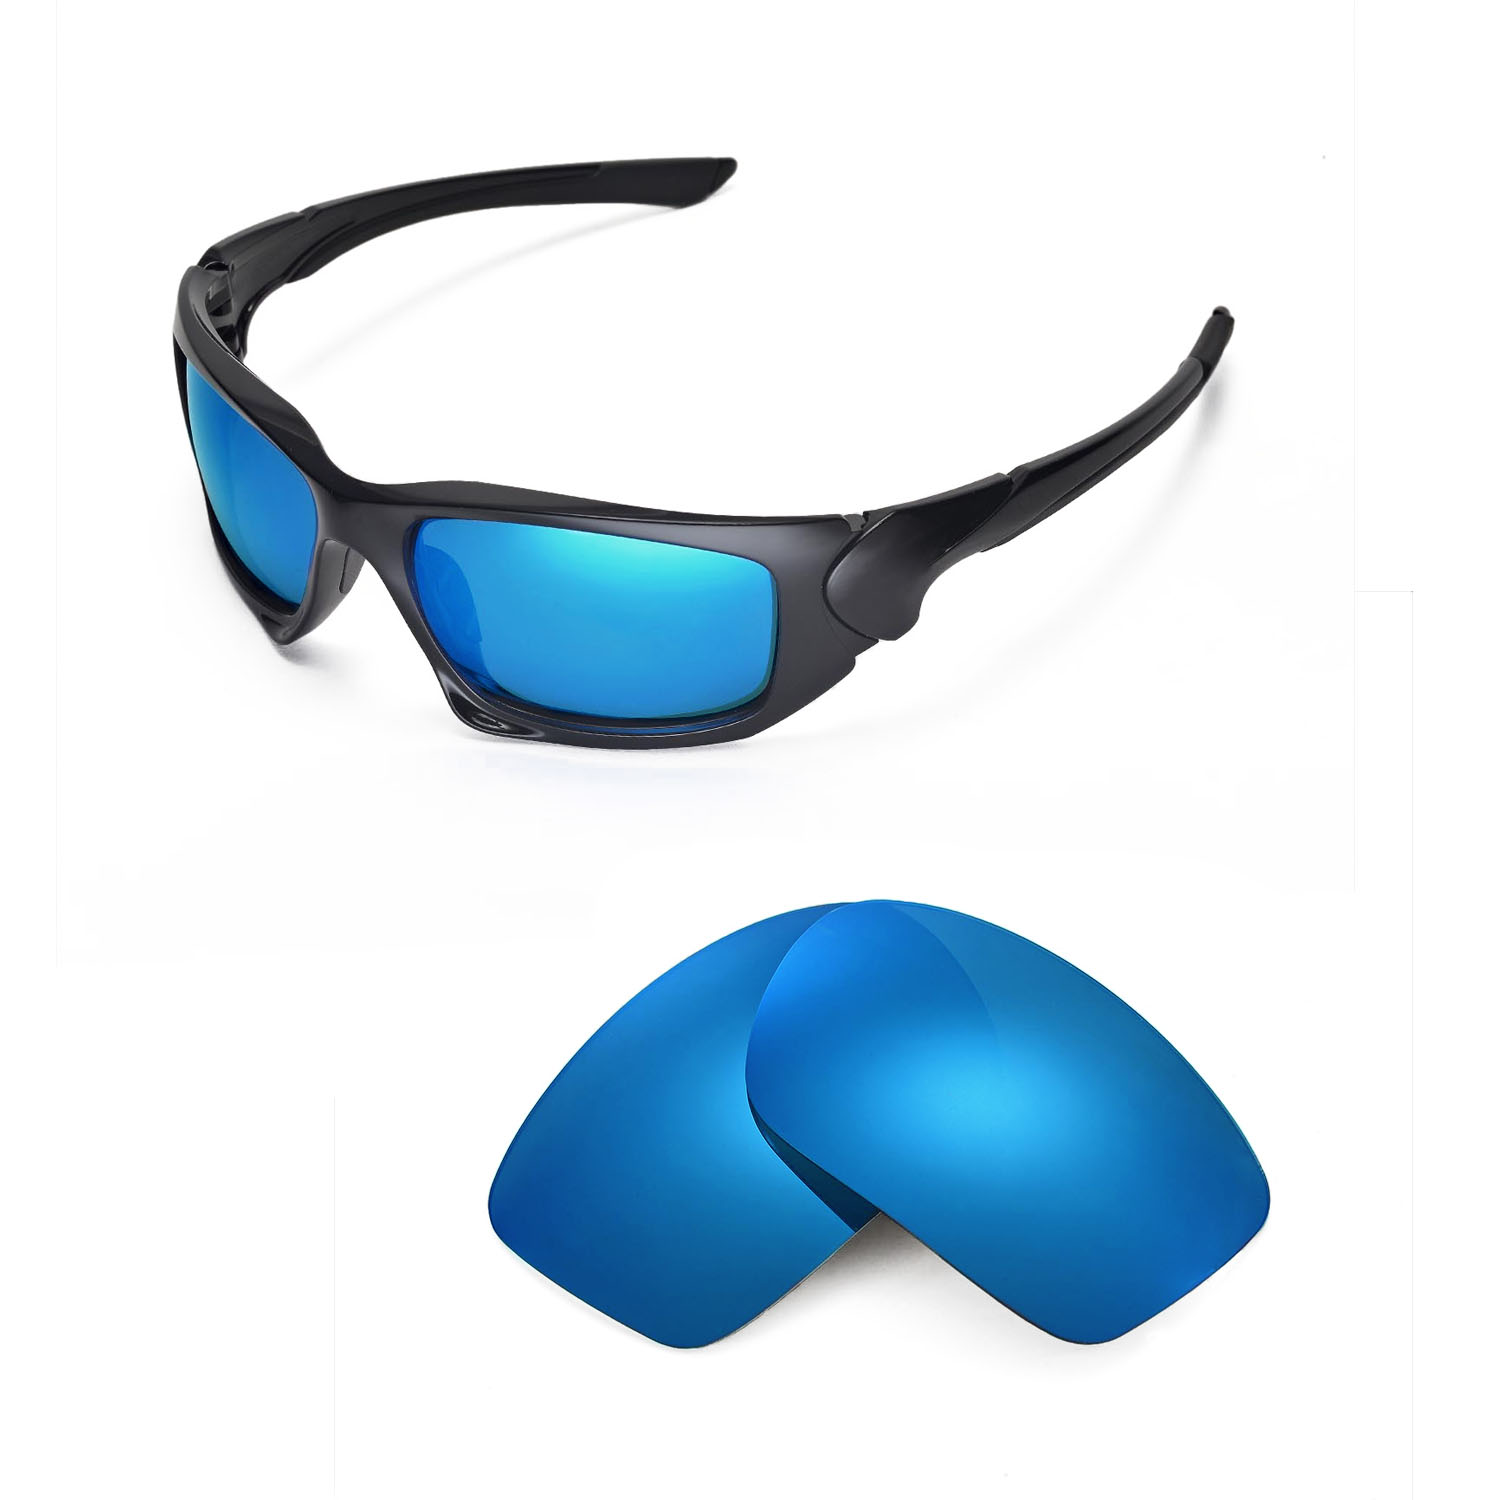 d26ffa1119 Details about New Walleva Polarized Ice Blue Replacement Lenses For Oakley  Scalpel Sunglasses